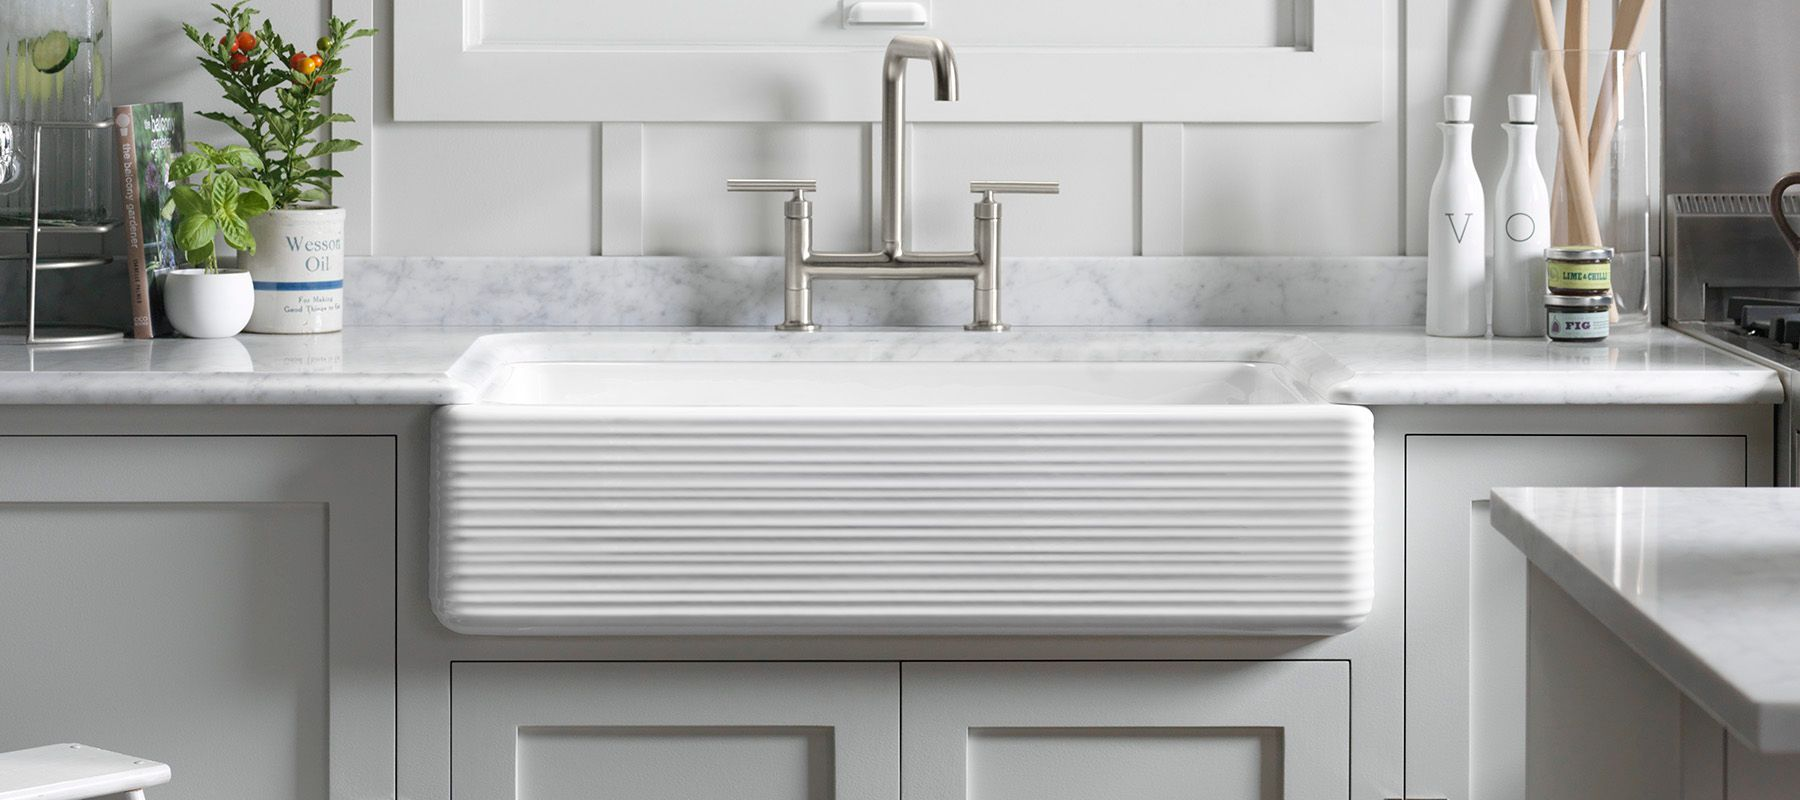 Genial Number Of Basins 1 Fireclay KOHLER Enameled Cast Iron Kitchen Sinks |  Kitchen | KOHLER